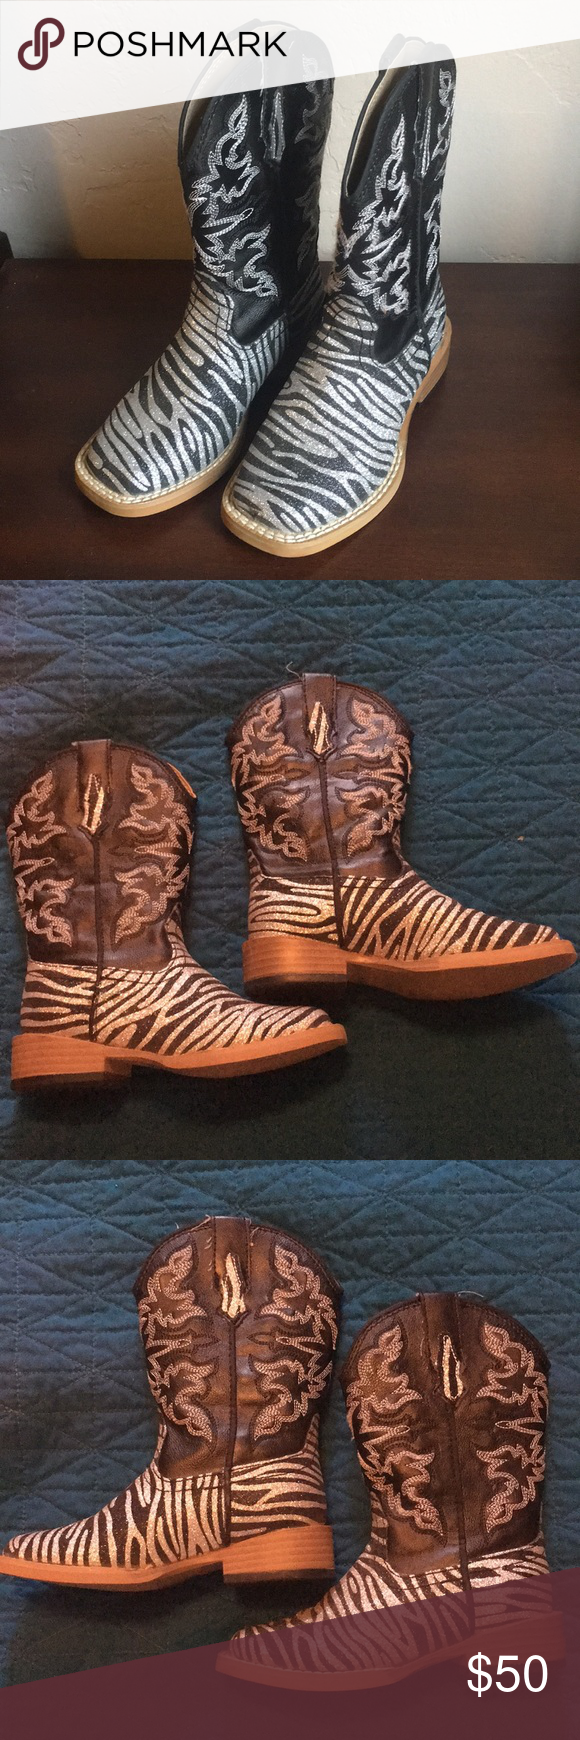 ef7767199ca Youth cowboy boot - girls size 9 Roper. Youth cowboy boot - girls ...